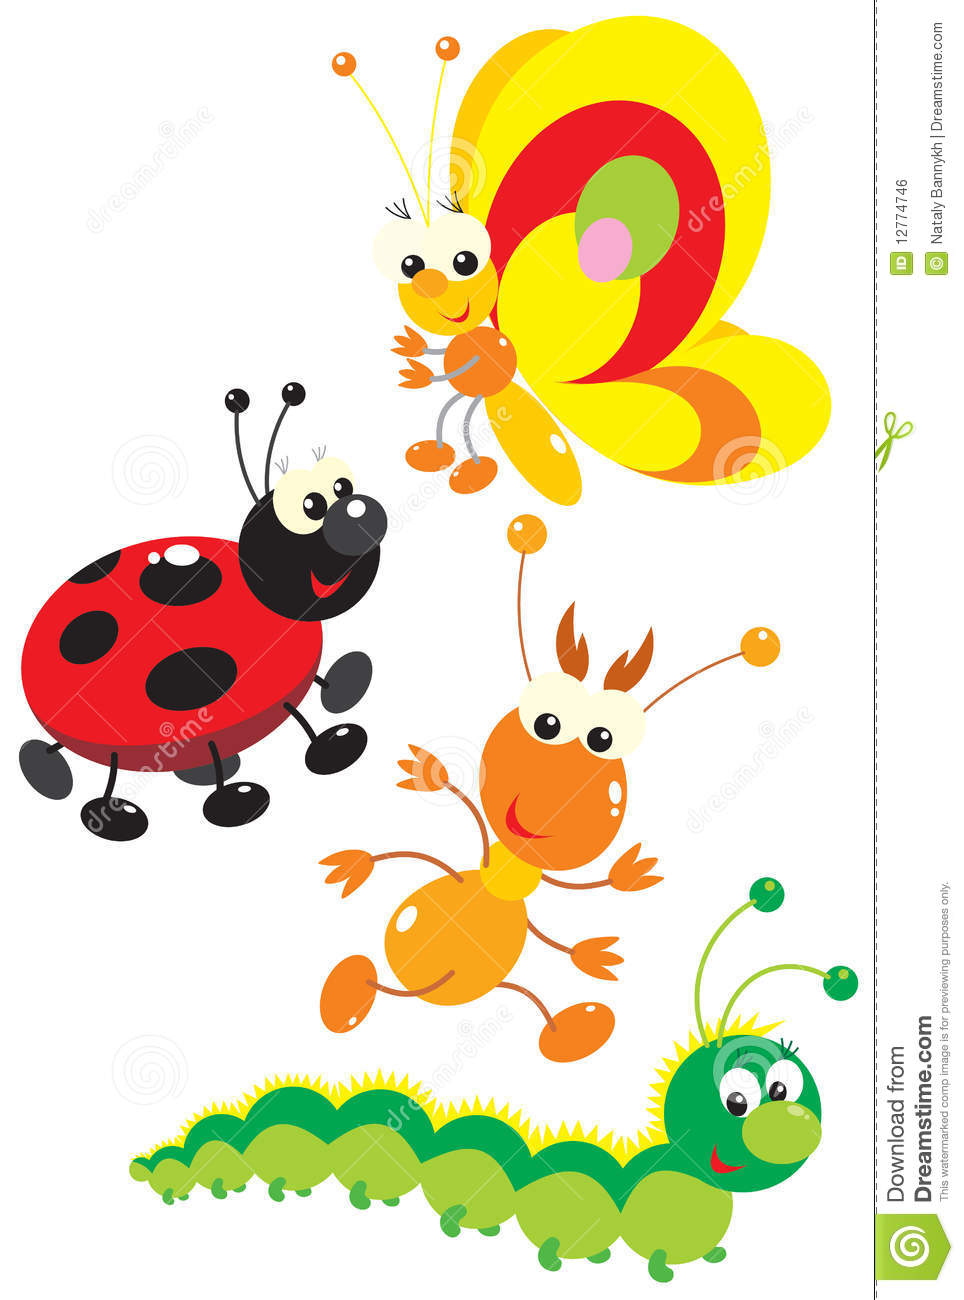 The clip-arts of the colorful insects drawn in the children's style ...